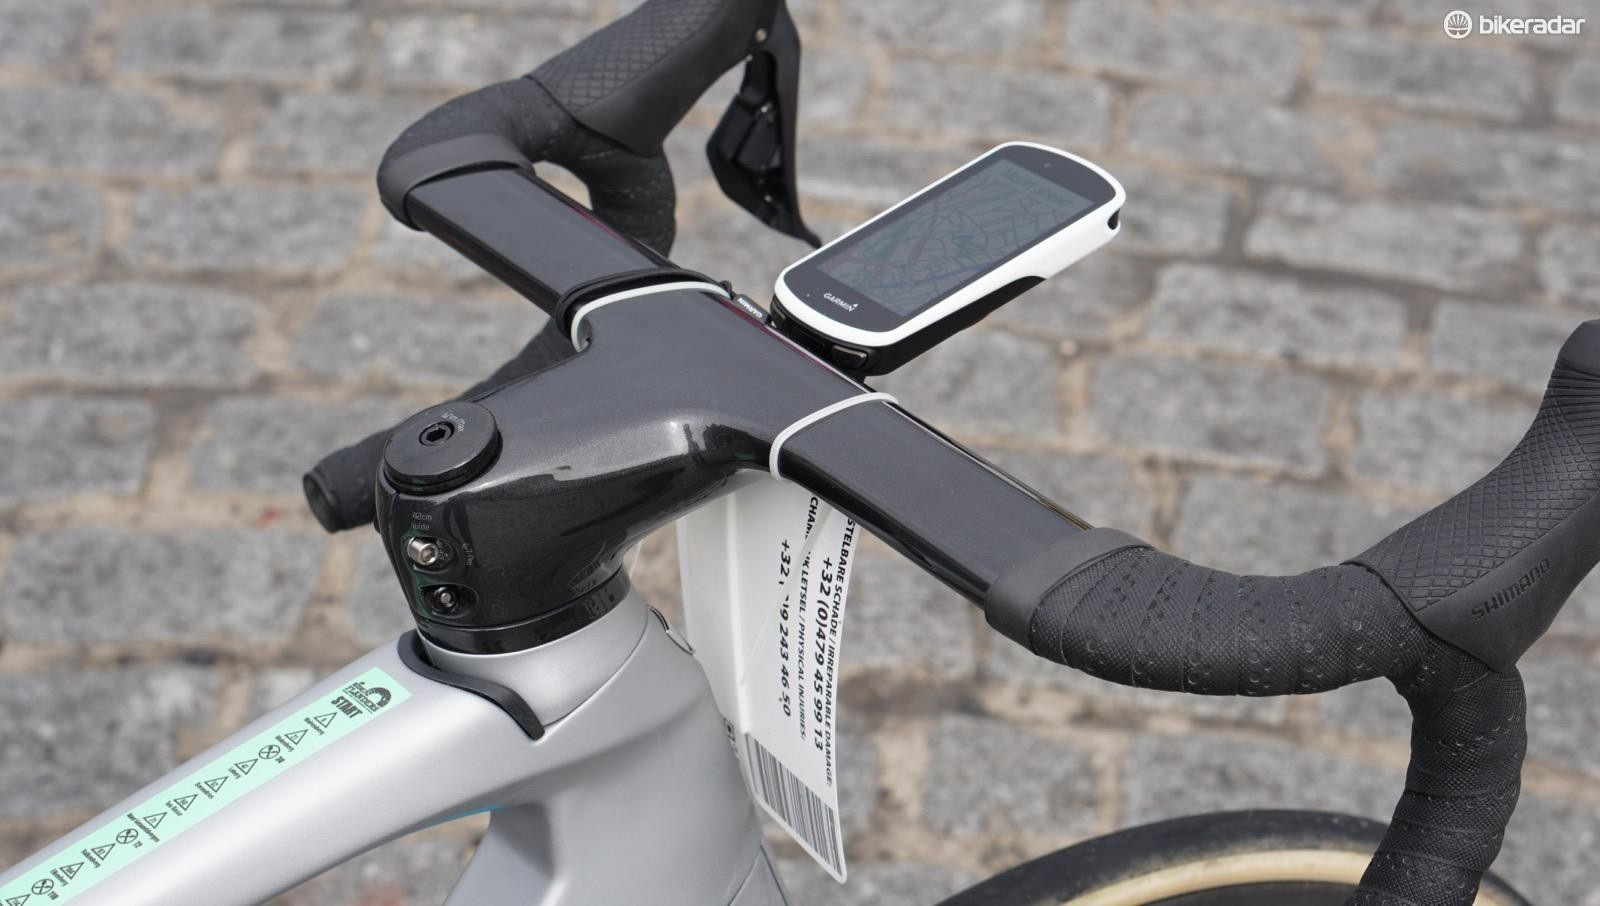 What's even bigger than Madone aero bars? A Garmin Edge 1030, of course. I've grown accustomed to the size, and appreciate the clear navigation and battery life, among other things